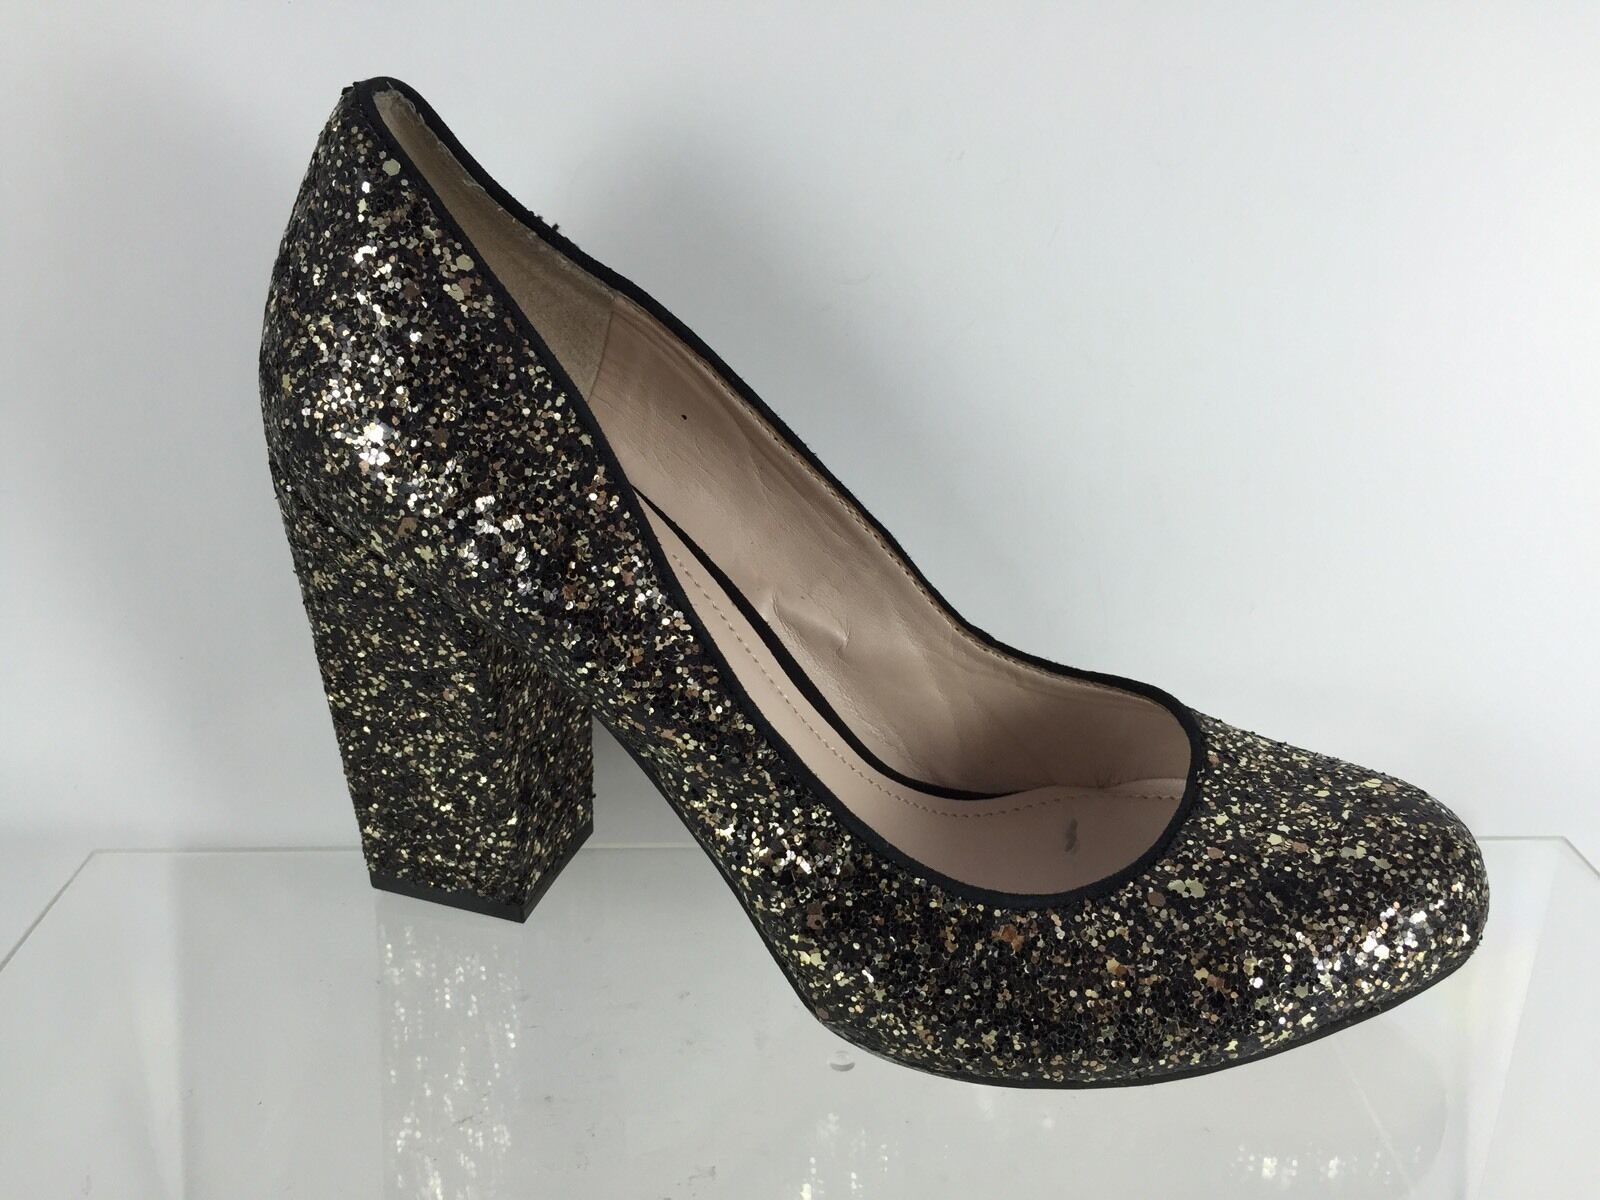 Vince Camuto Womens Black gold Glittered Heels 7.5 M